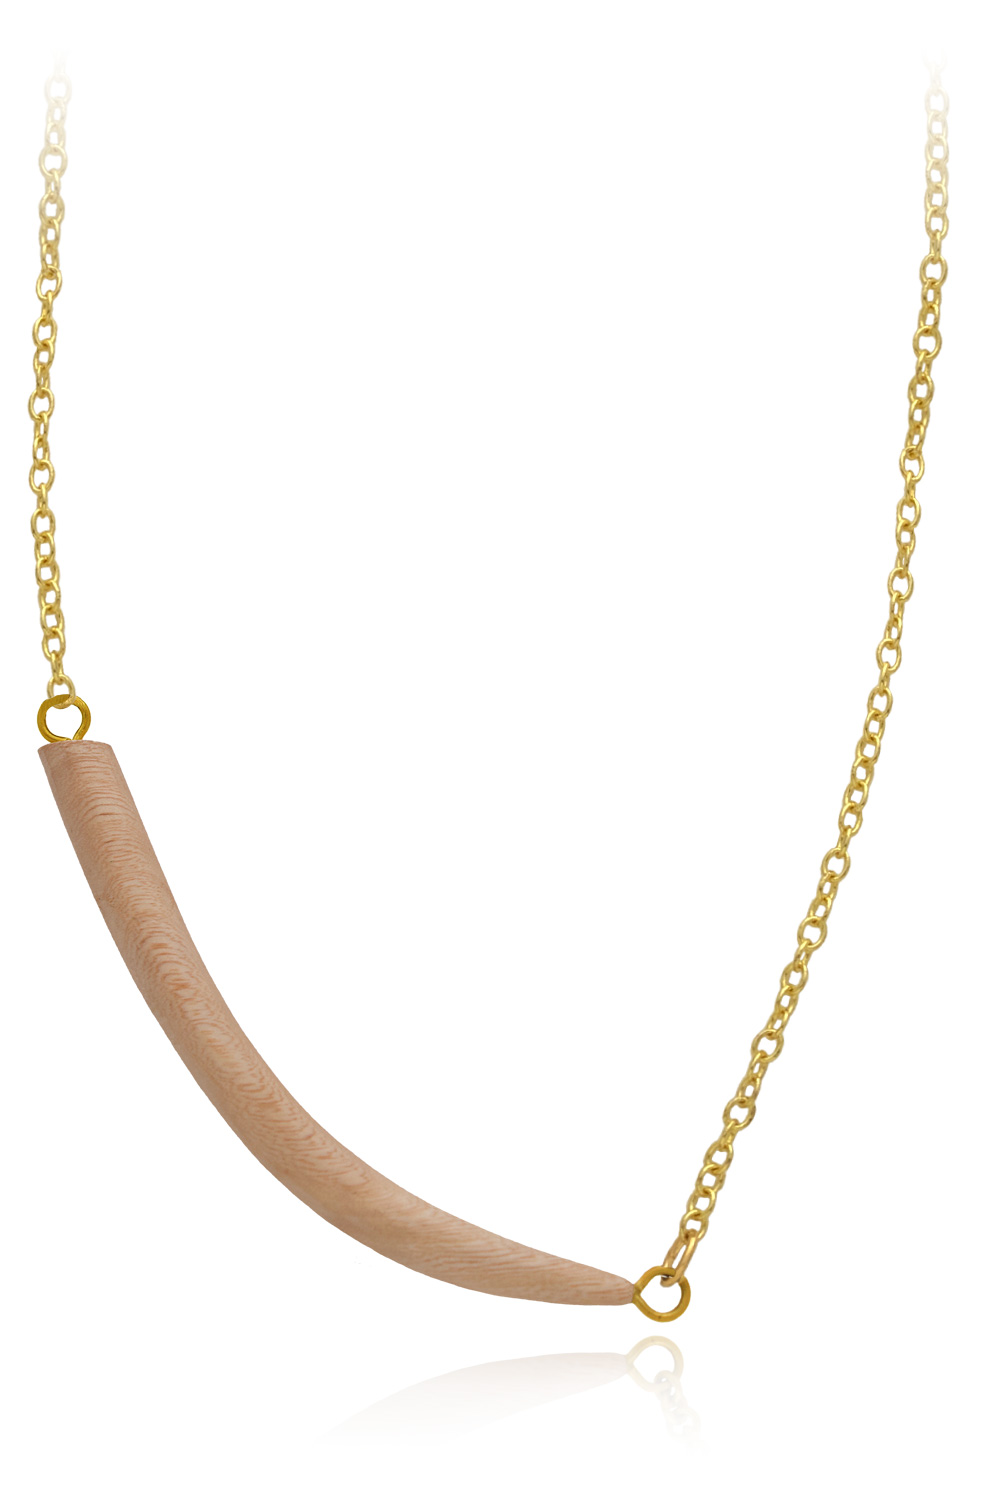 Wood Tusk Necklace Fine Chain by SHIKHAZURI